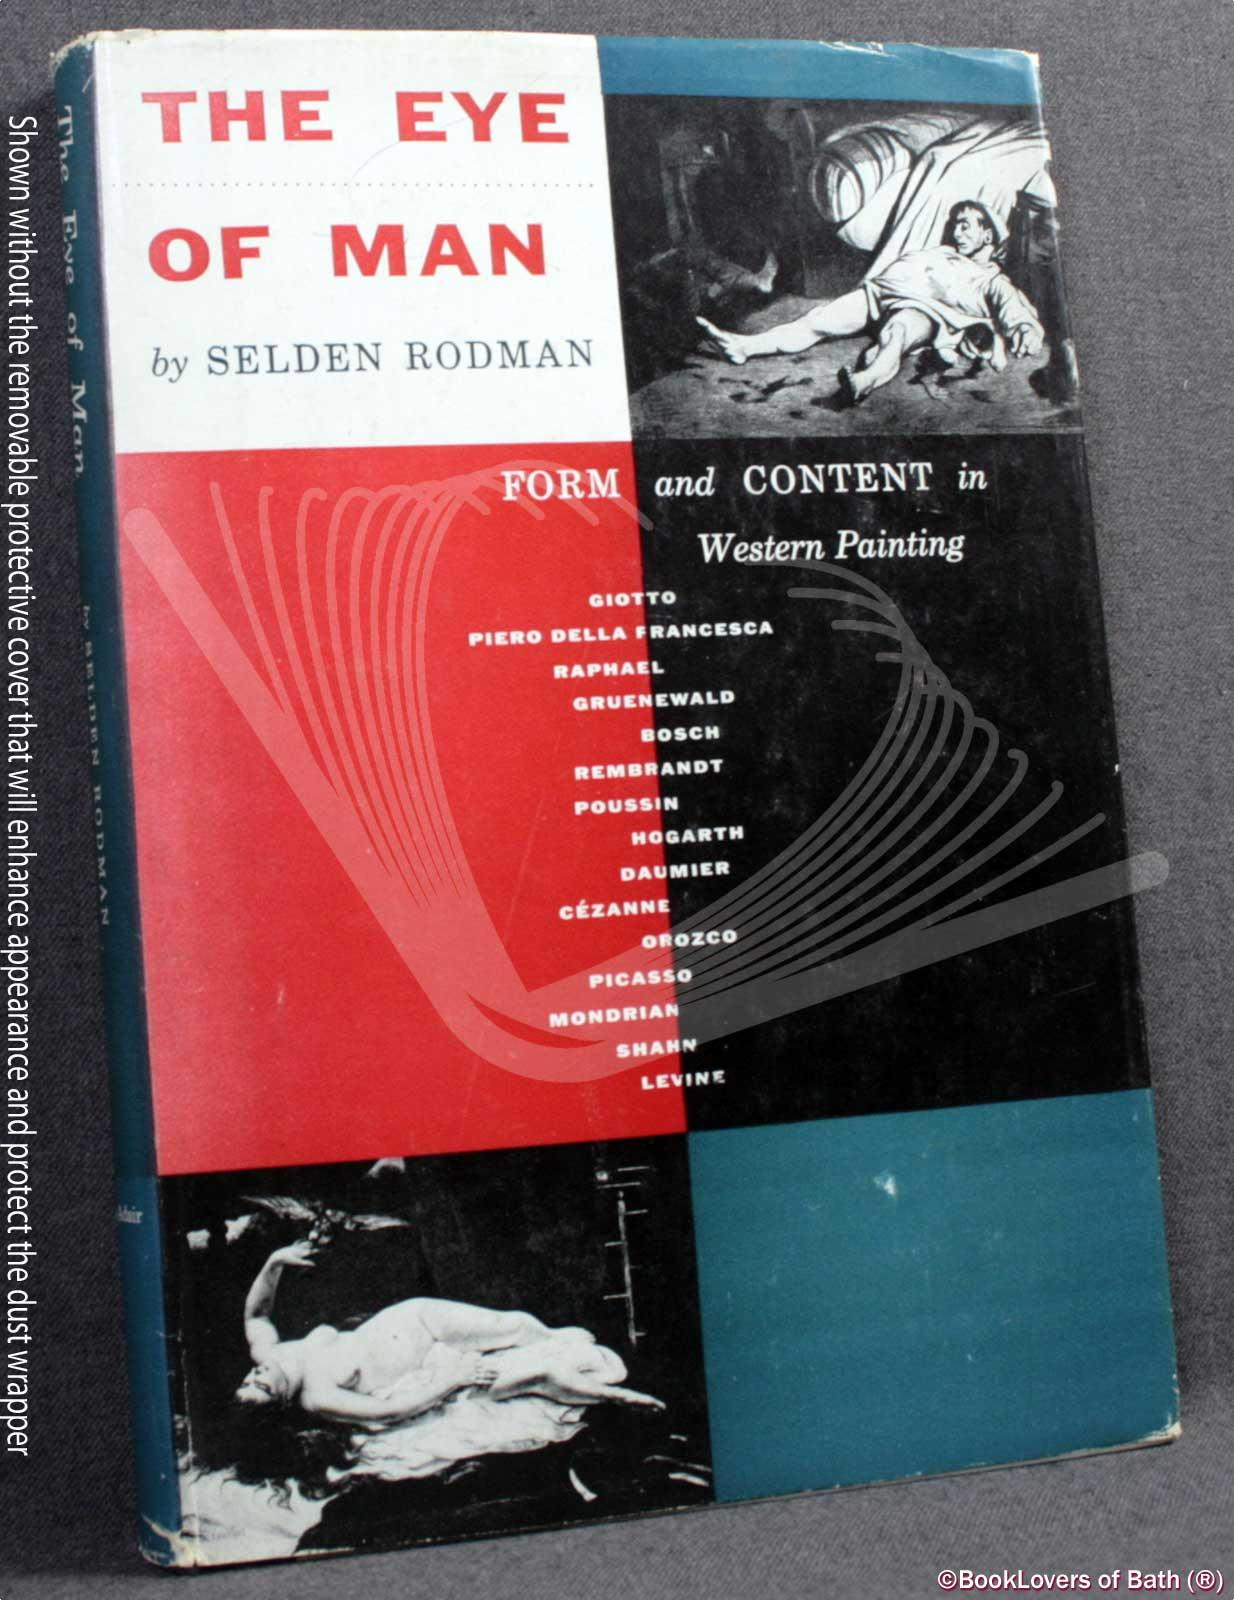 The Eye of Man: Form and Content in Western Painting - Selden Rodman